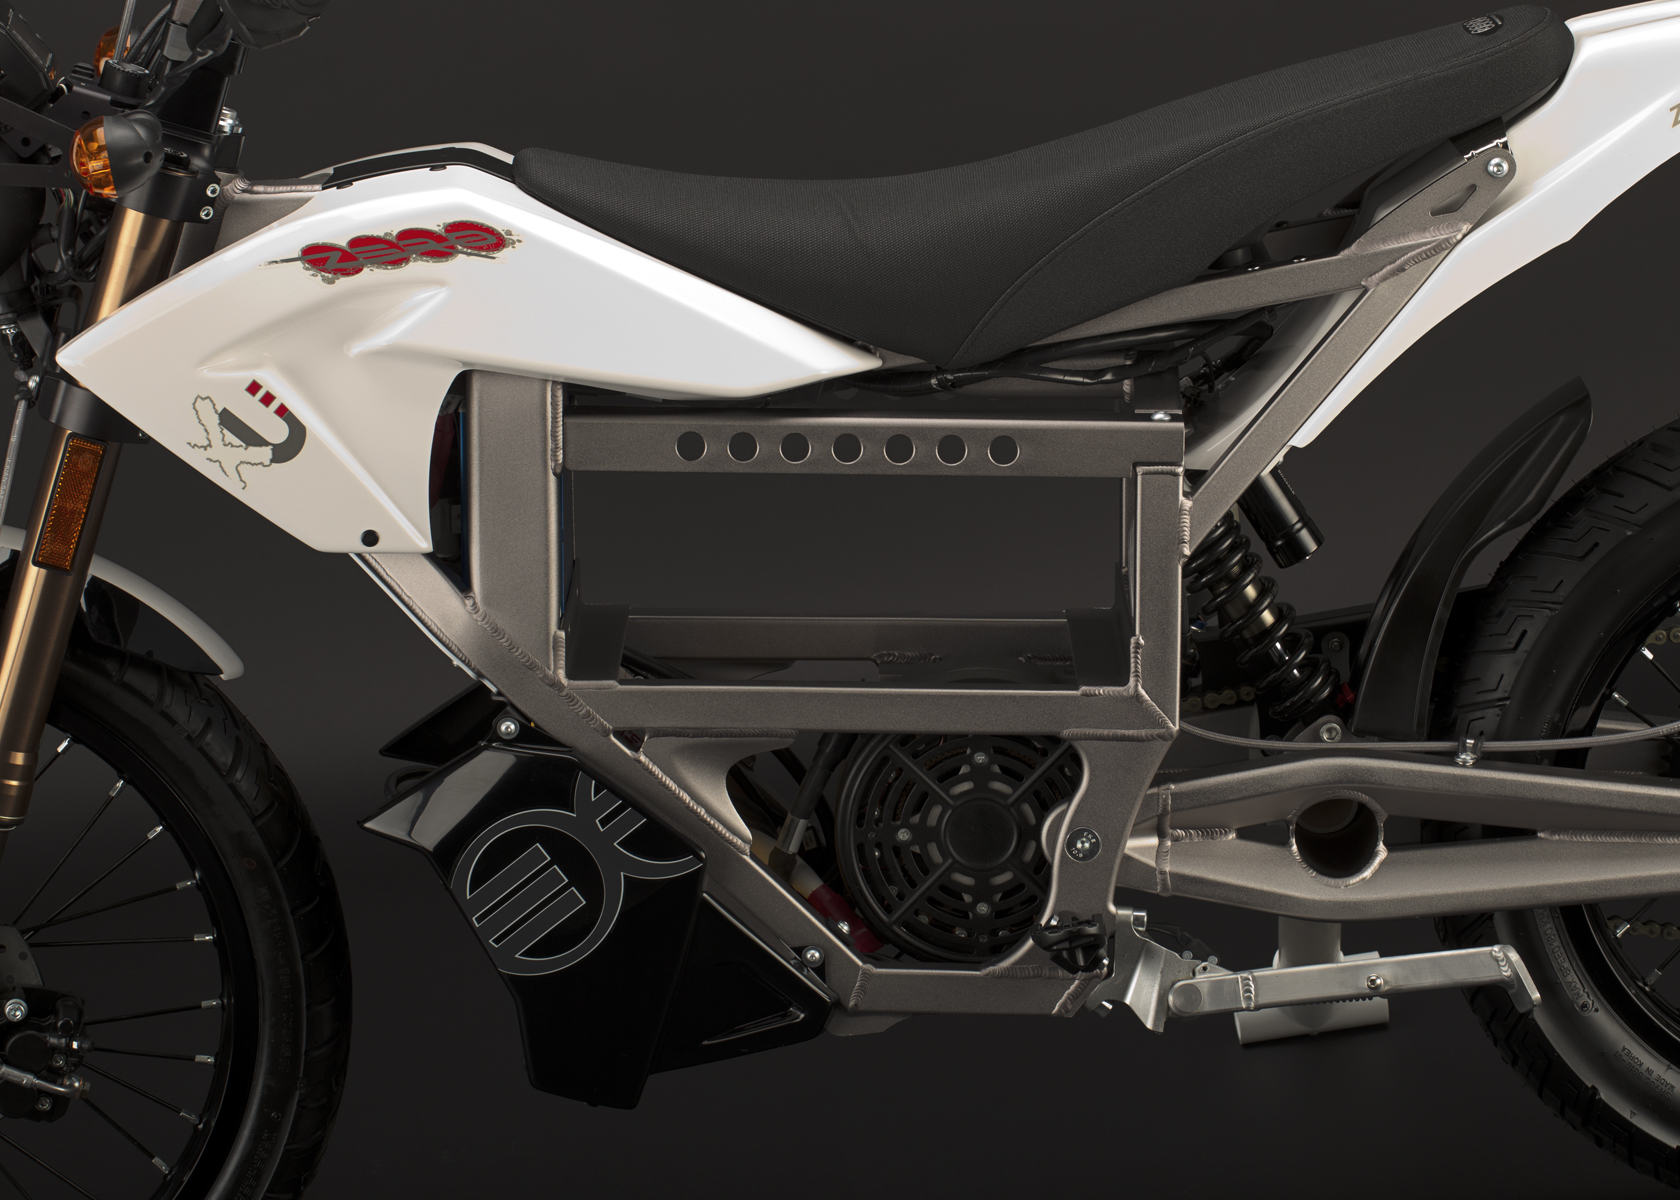 2011 Zero XU Electric Motorcycle: No Battery